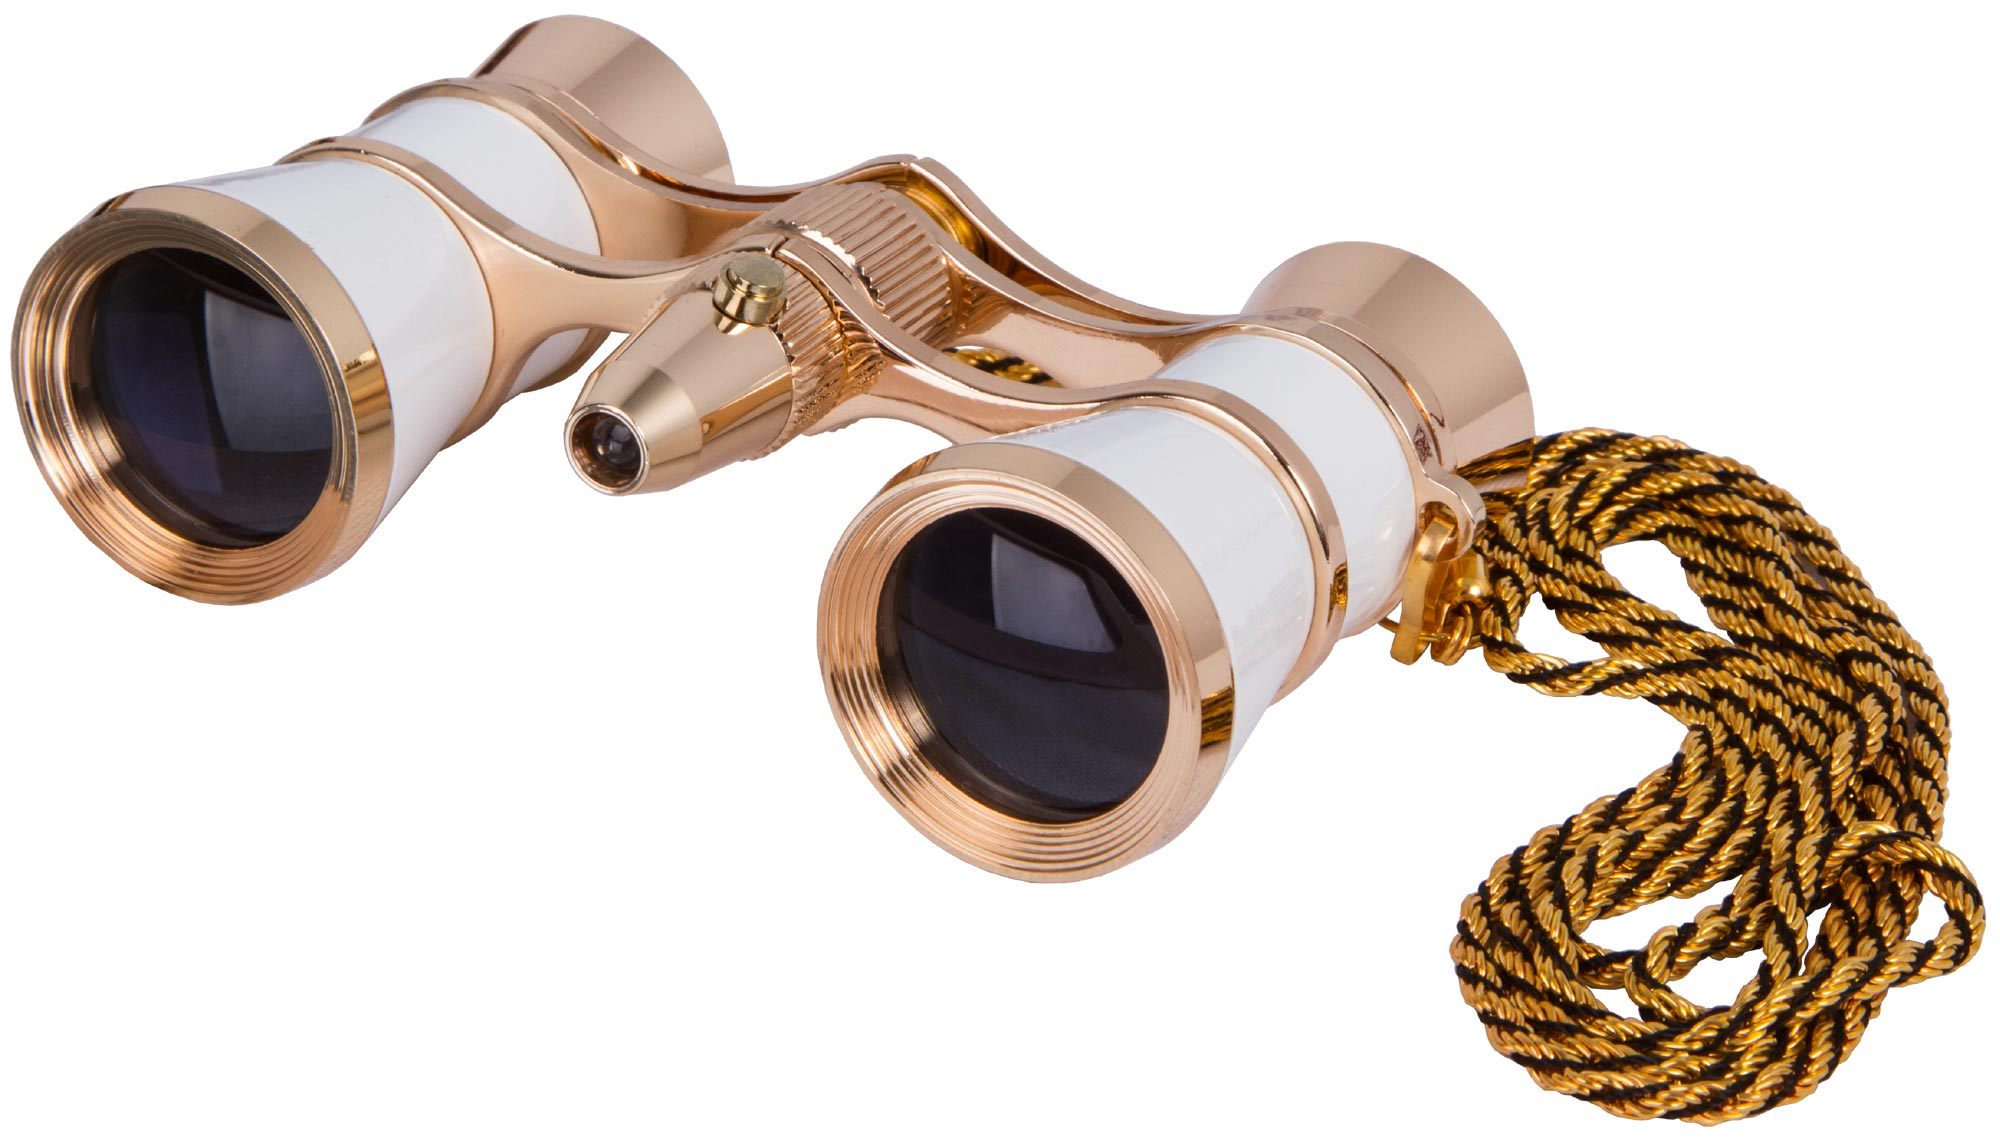 Levenhuk Broadway 325F Opera Glasses (white, with LED light and chain) illustration